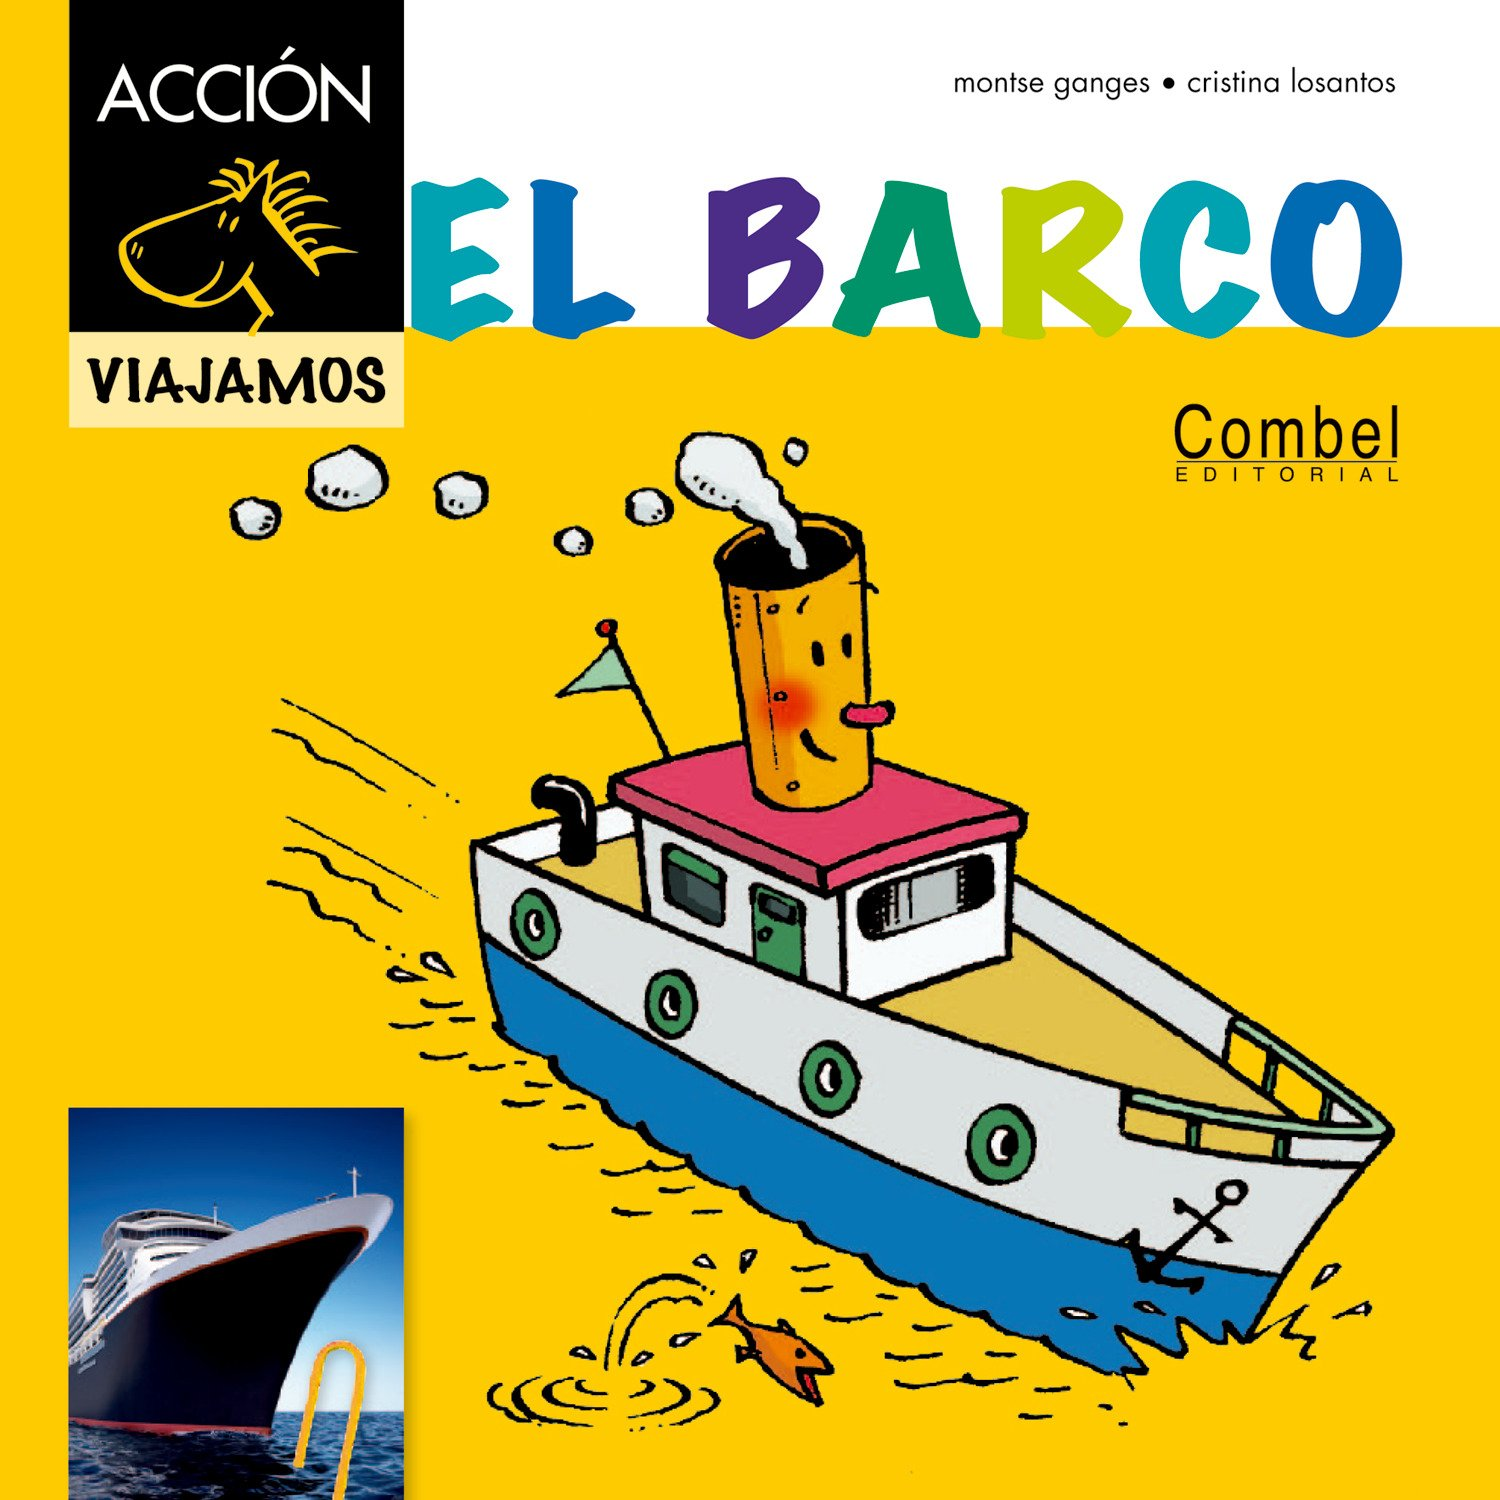 El barco (Caballo alado ACCIÓN) (Spanish Edition): Montse Ganges, Cristina Losantos: 9788498257502: Amazon.com: Books